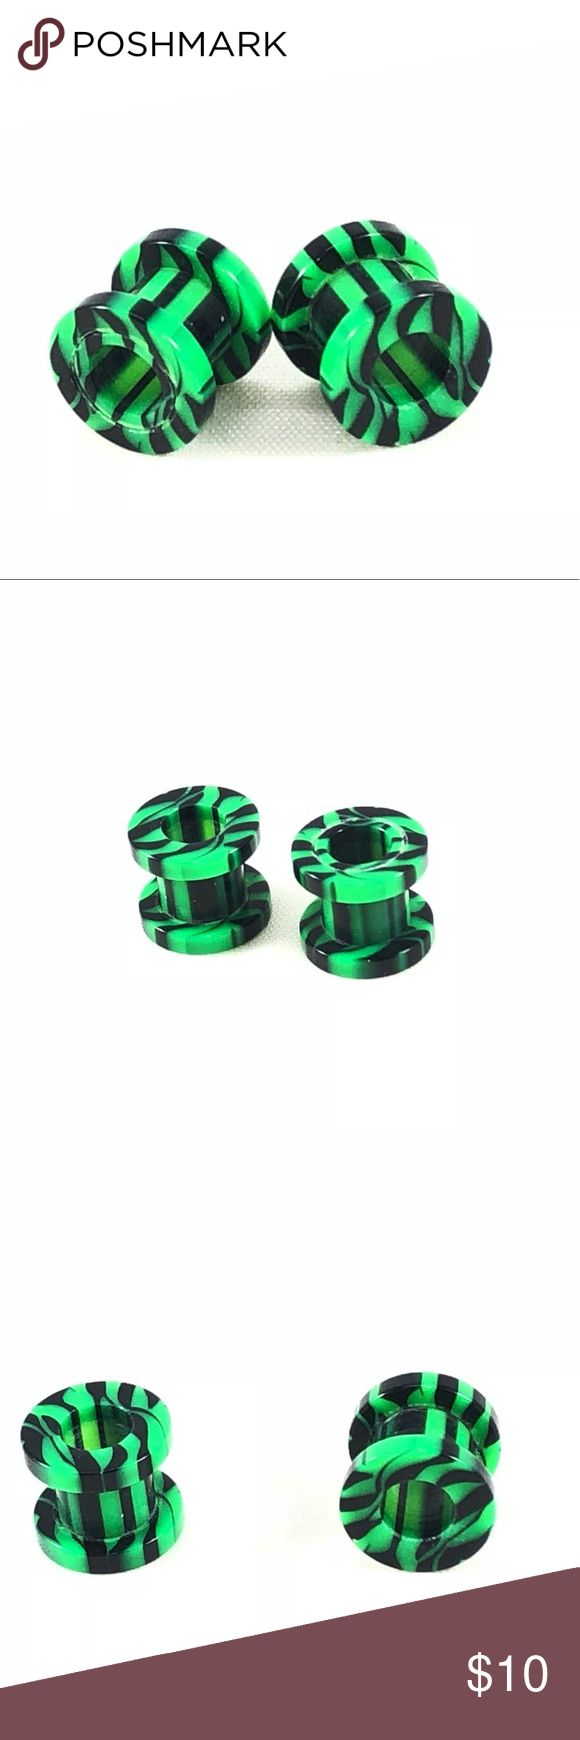 Green & Black Striped Acrylic Ear Gauge Tunnels New! Awesome green and black striped ear gauge tunnels. Removable ring/tip for easy entry! Available in sizes: 00g, 0g, 4g, 6g, & 8g.   ALSO AVAILABLE IN PINK, PURPLE, WHITE, & BLUE! SEE OTHER LISTINGS!  ALL BODY JEWELRY IS BUY ONE GET ONE FREE! SEE MY OTHER LISTINGS! Space City Jewels Jewelry Earrings